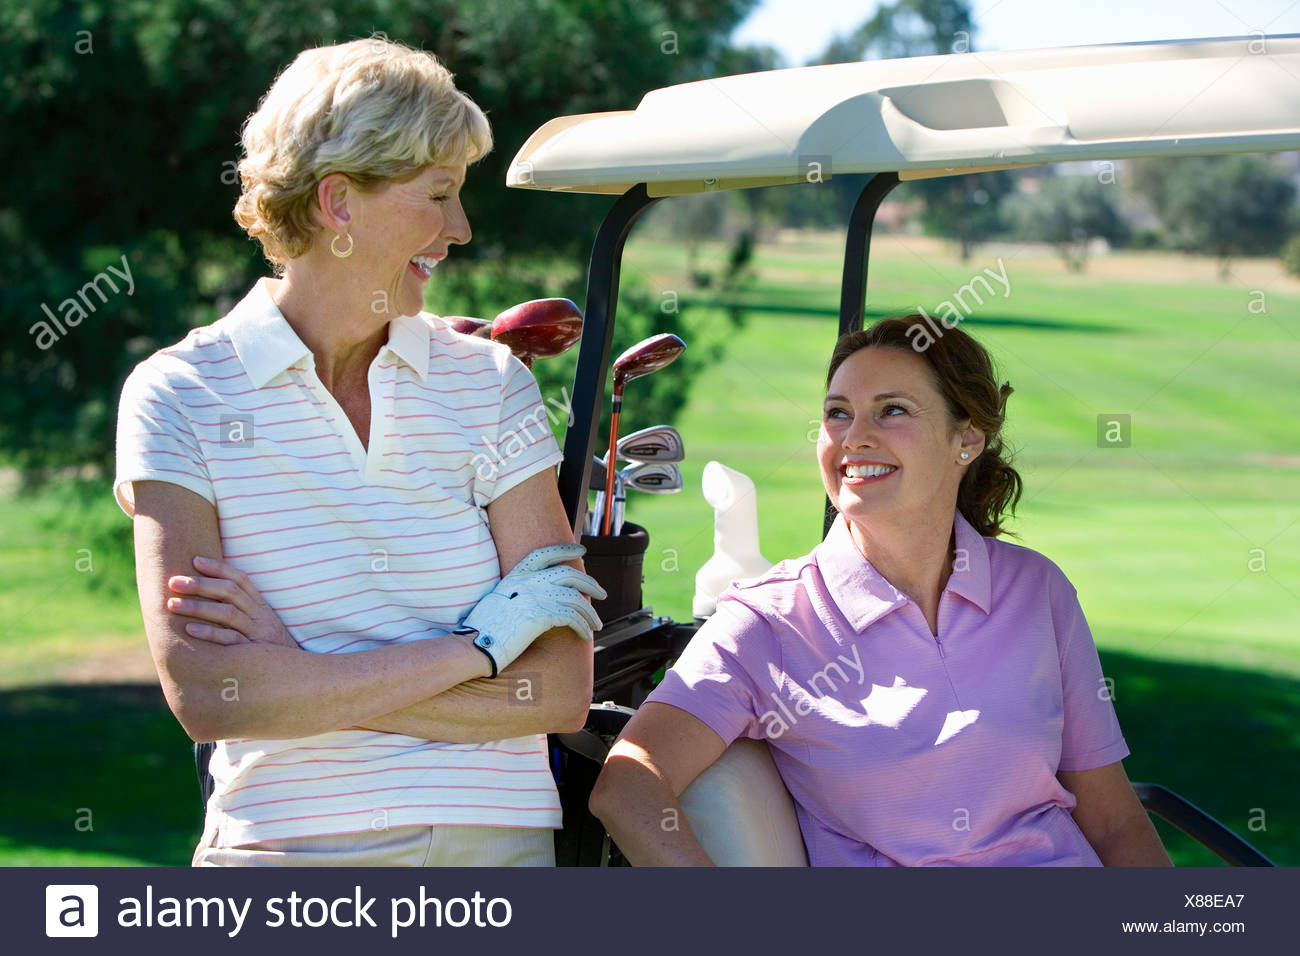 Two mature women talking on golf course, brunette sitting in golf buggy, blonde standing beside her, smiling - Stock Image